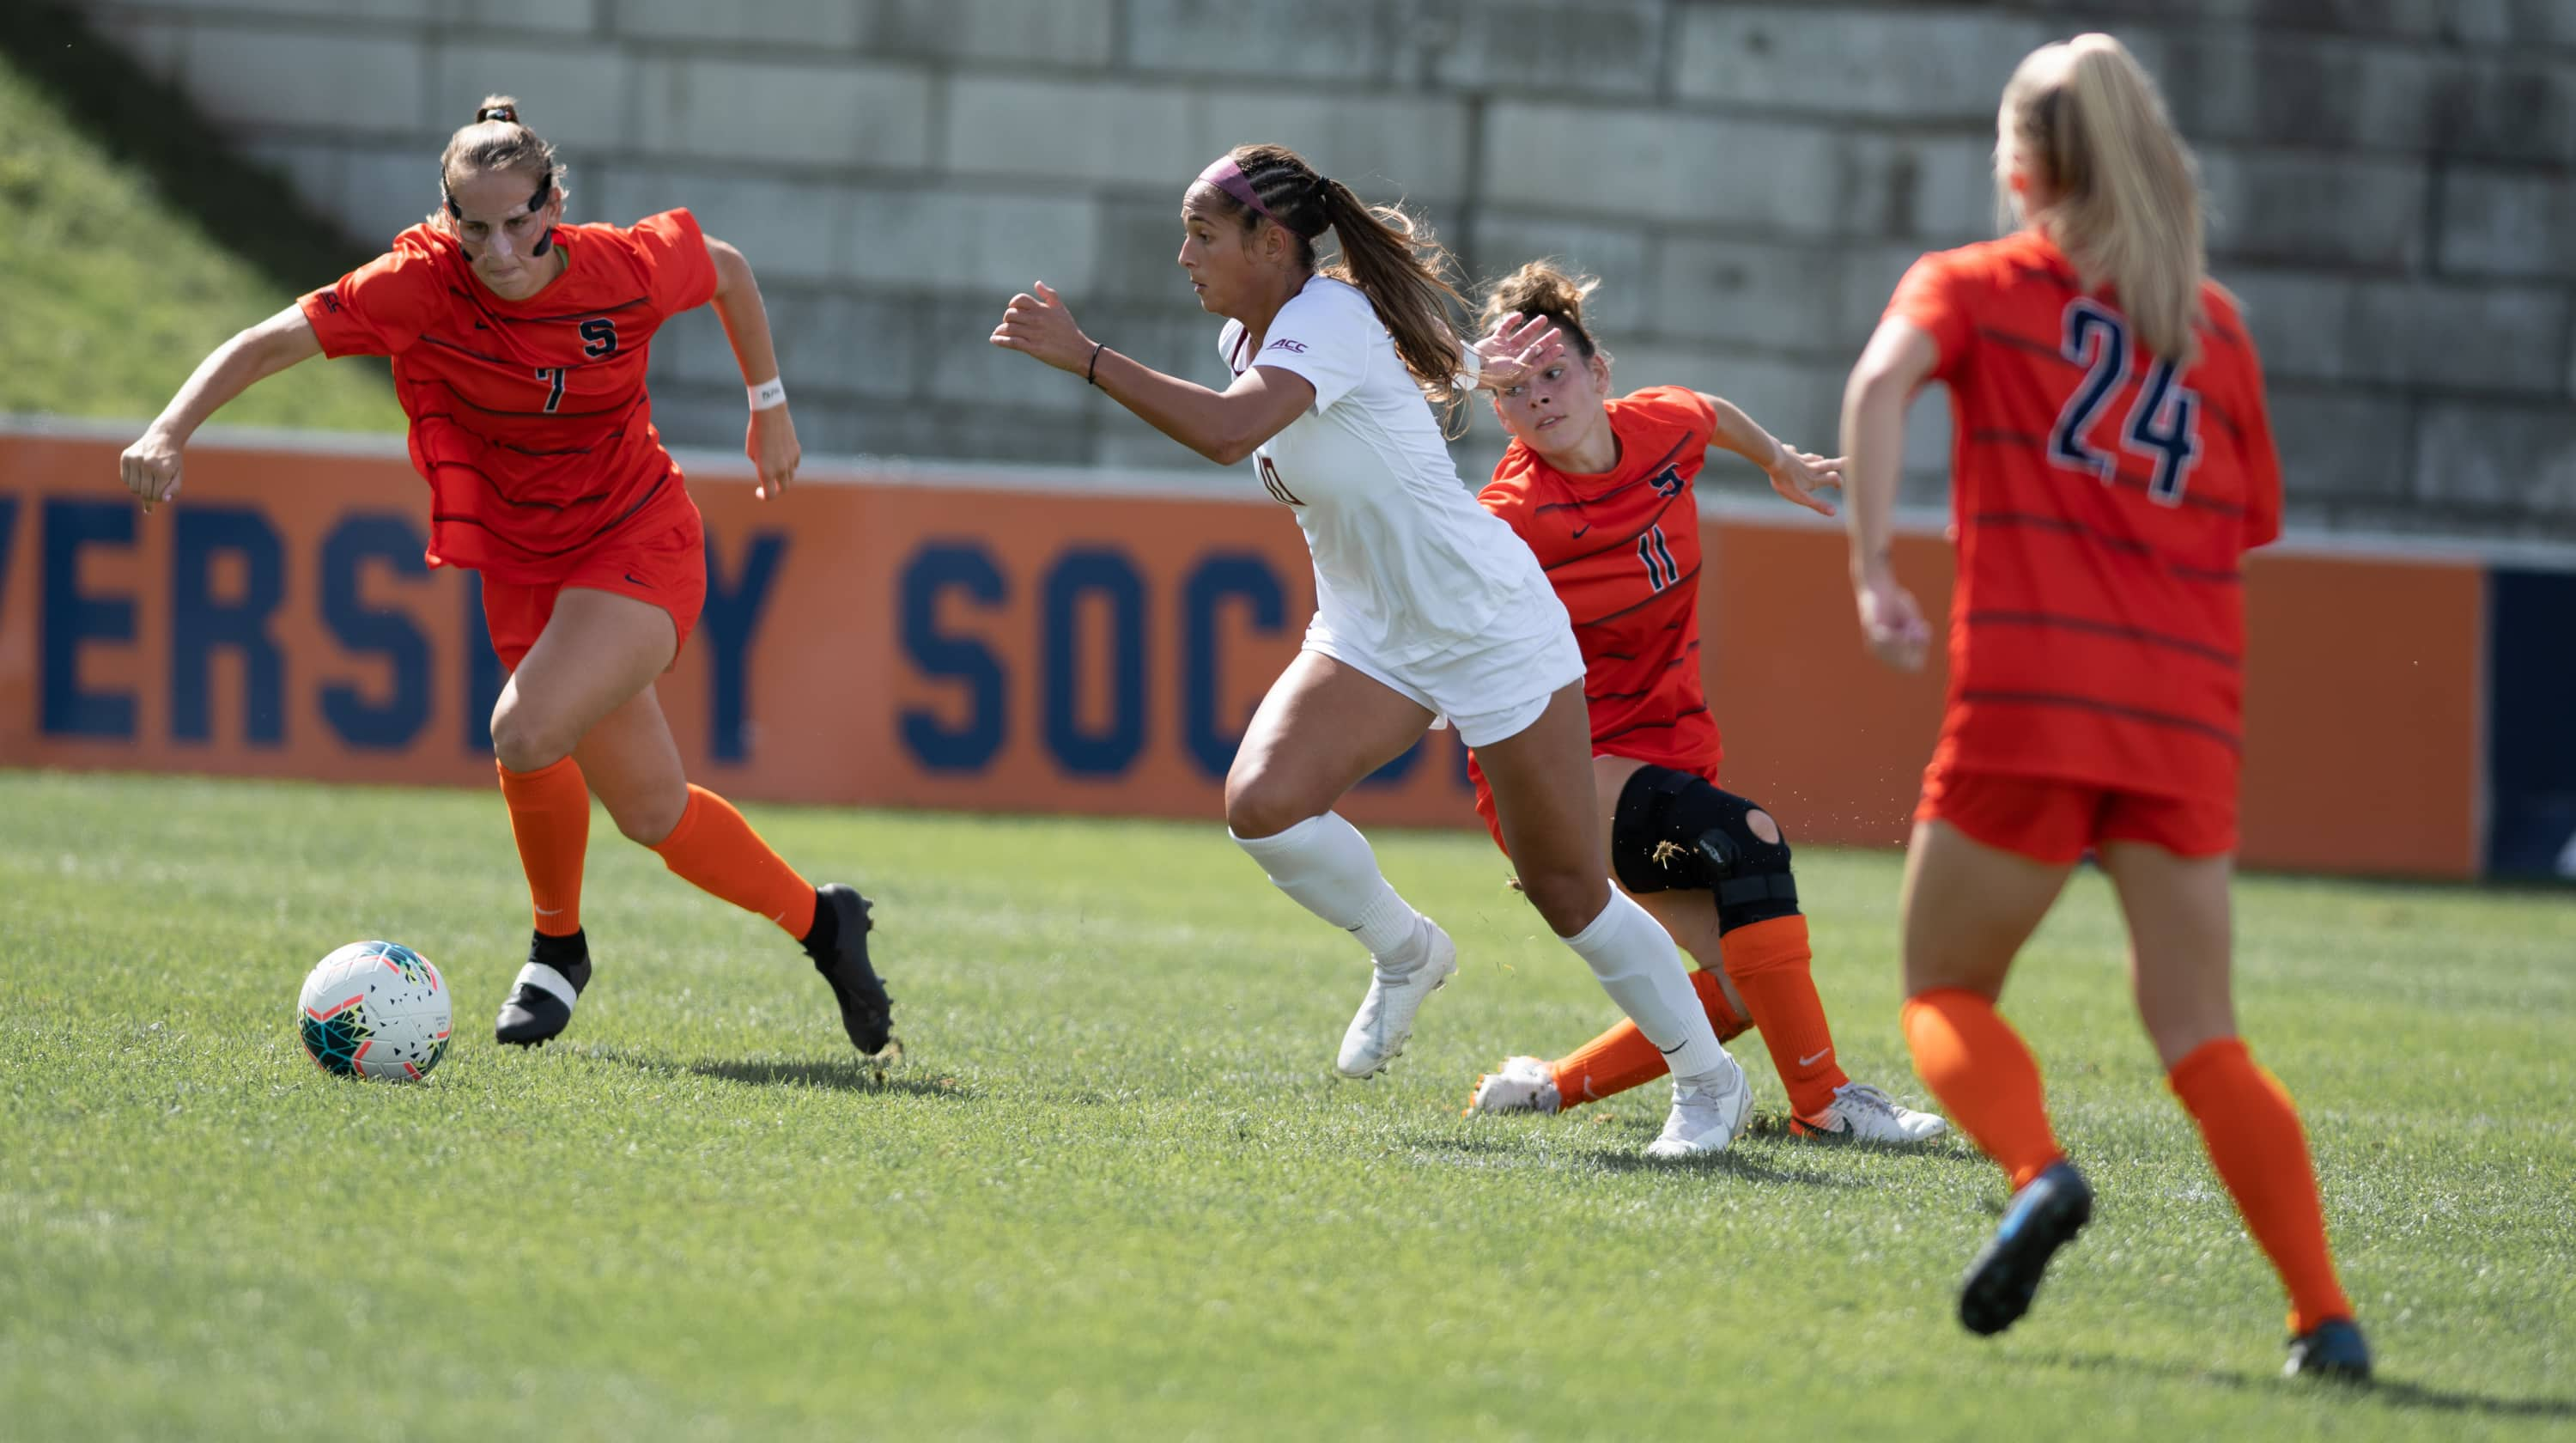 SU's Taylor Bennett (7), FSU's Deyna Castellanos (10) and SU's Jenna Tivnan (11) fight for the ball during the Sept 29 game.